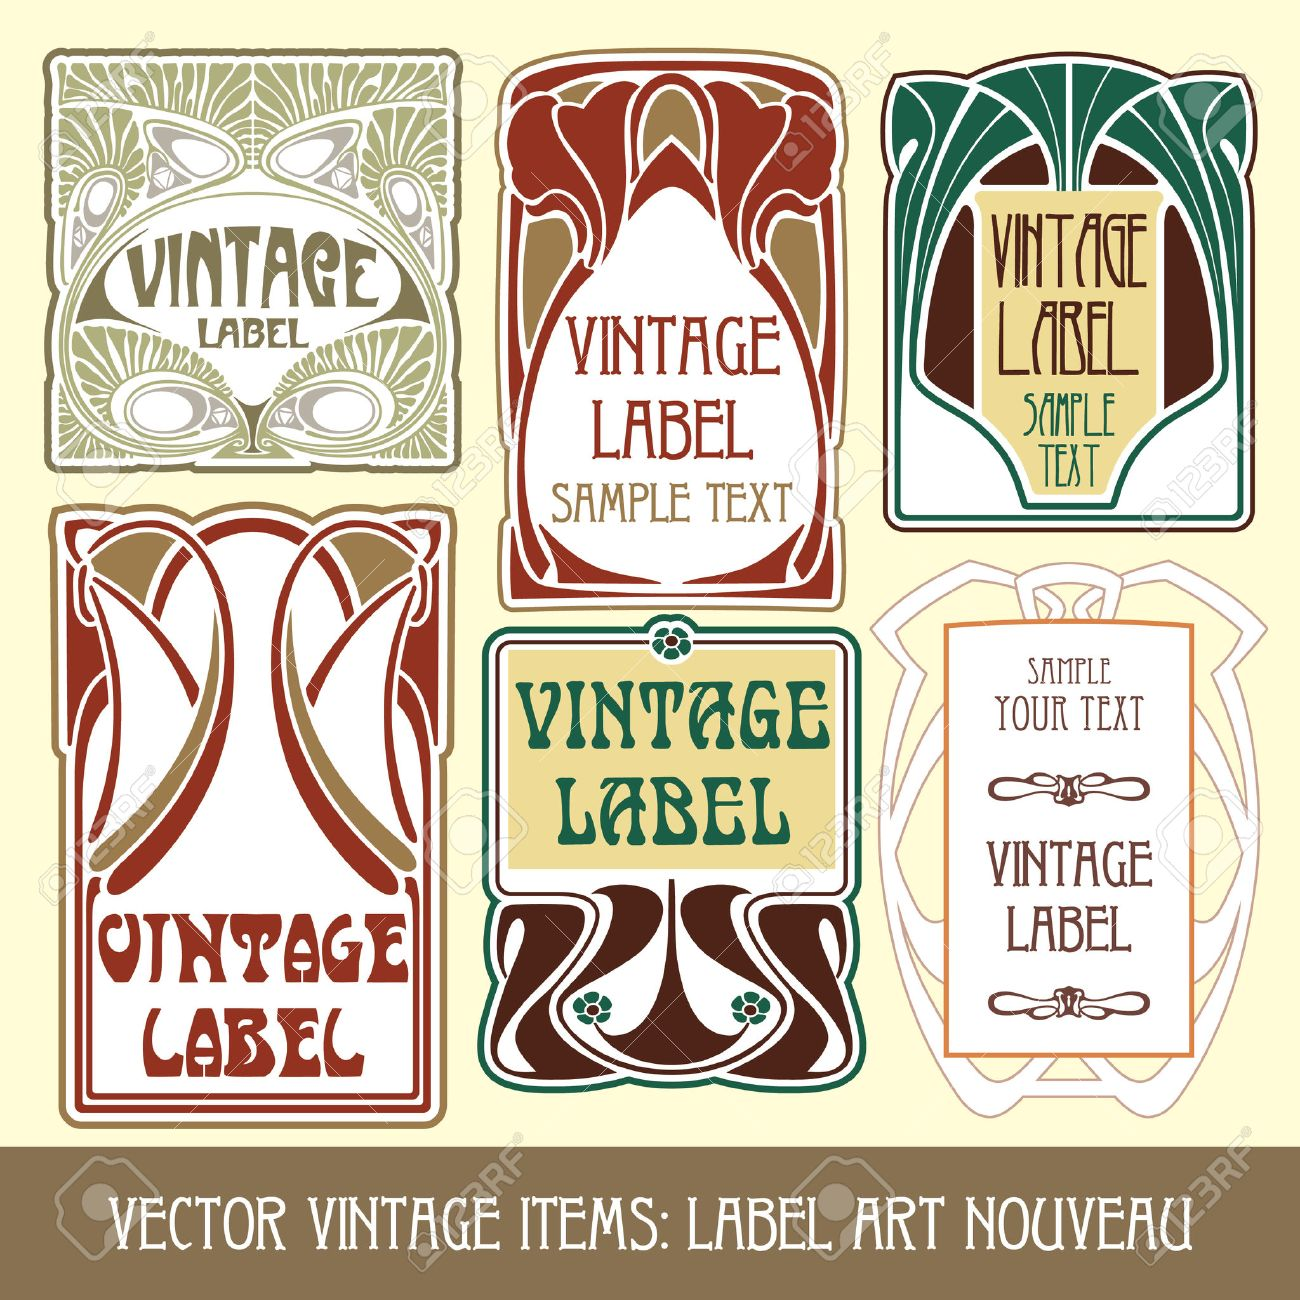 vector vintage items: label art nouveau Stock Vector - 8621439